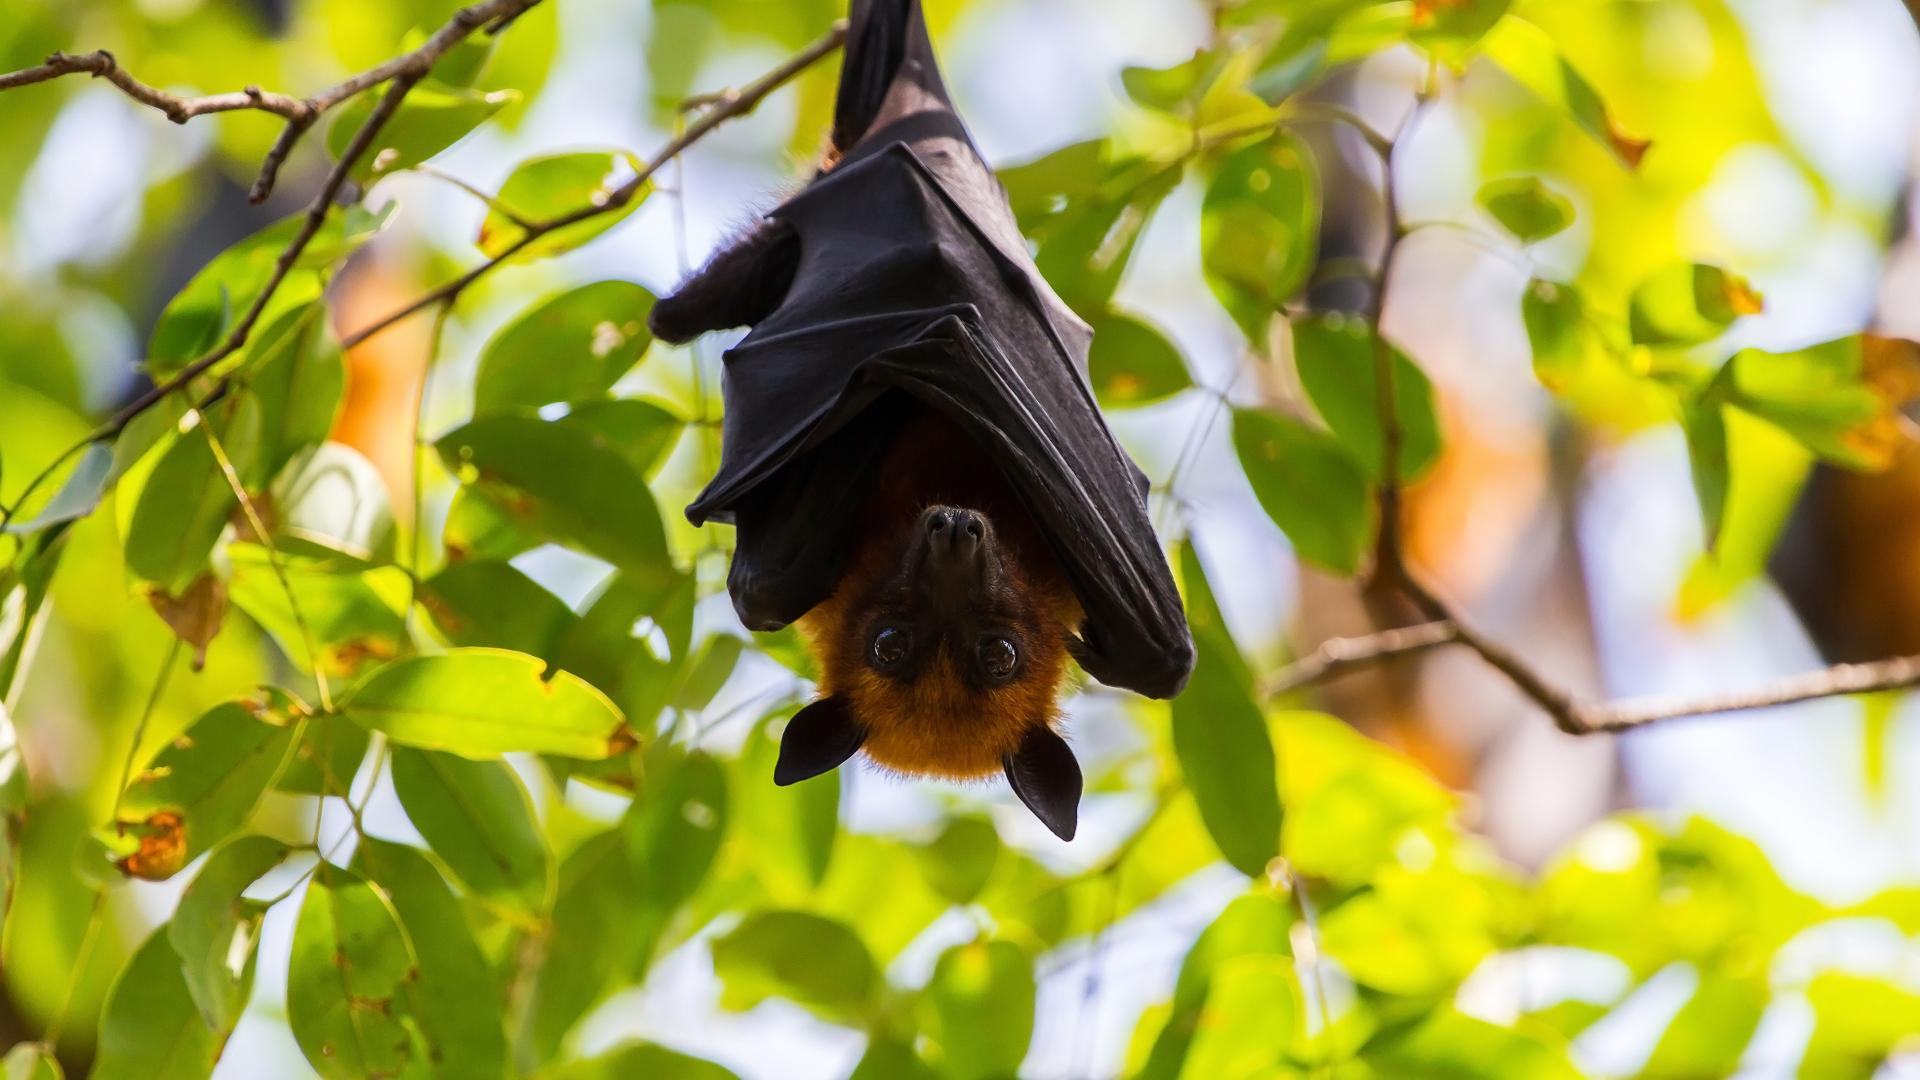 Fruit bat in hanging from a tree